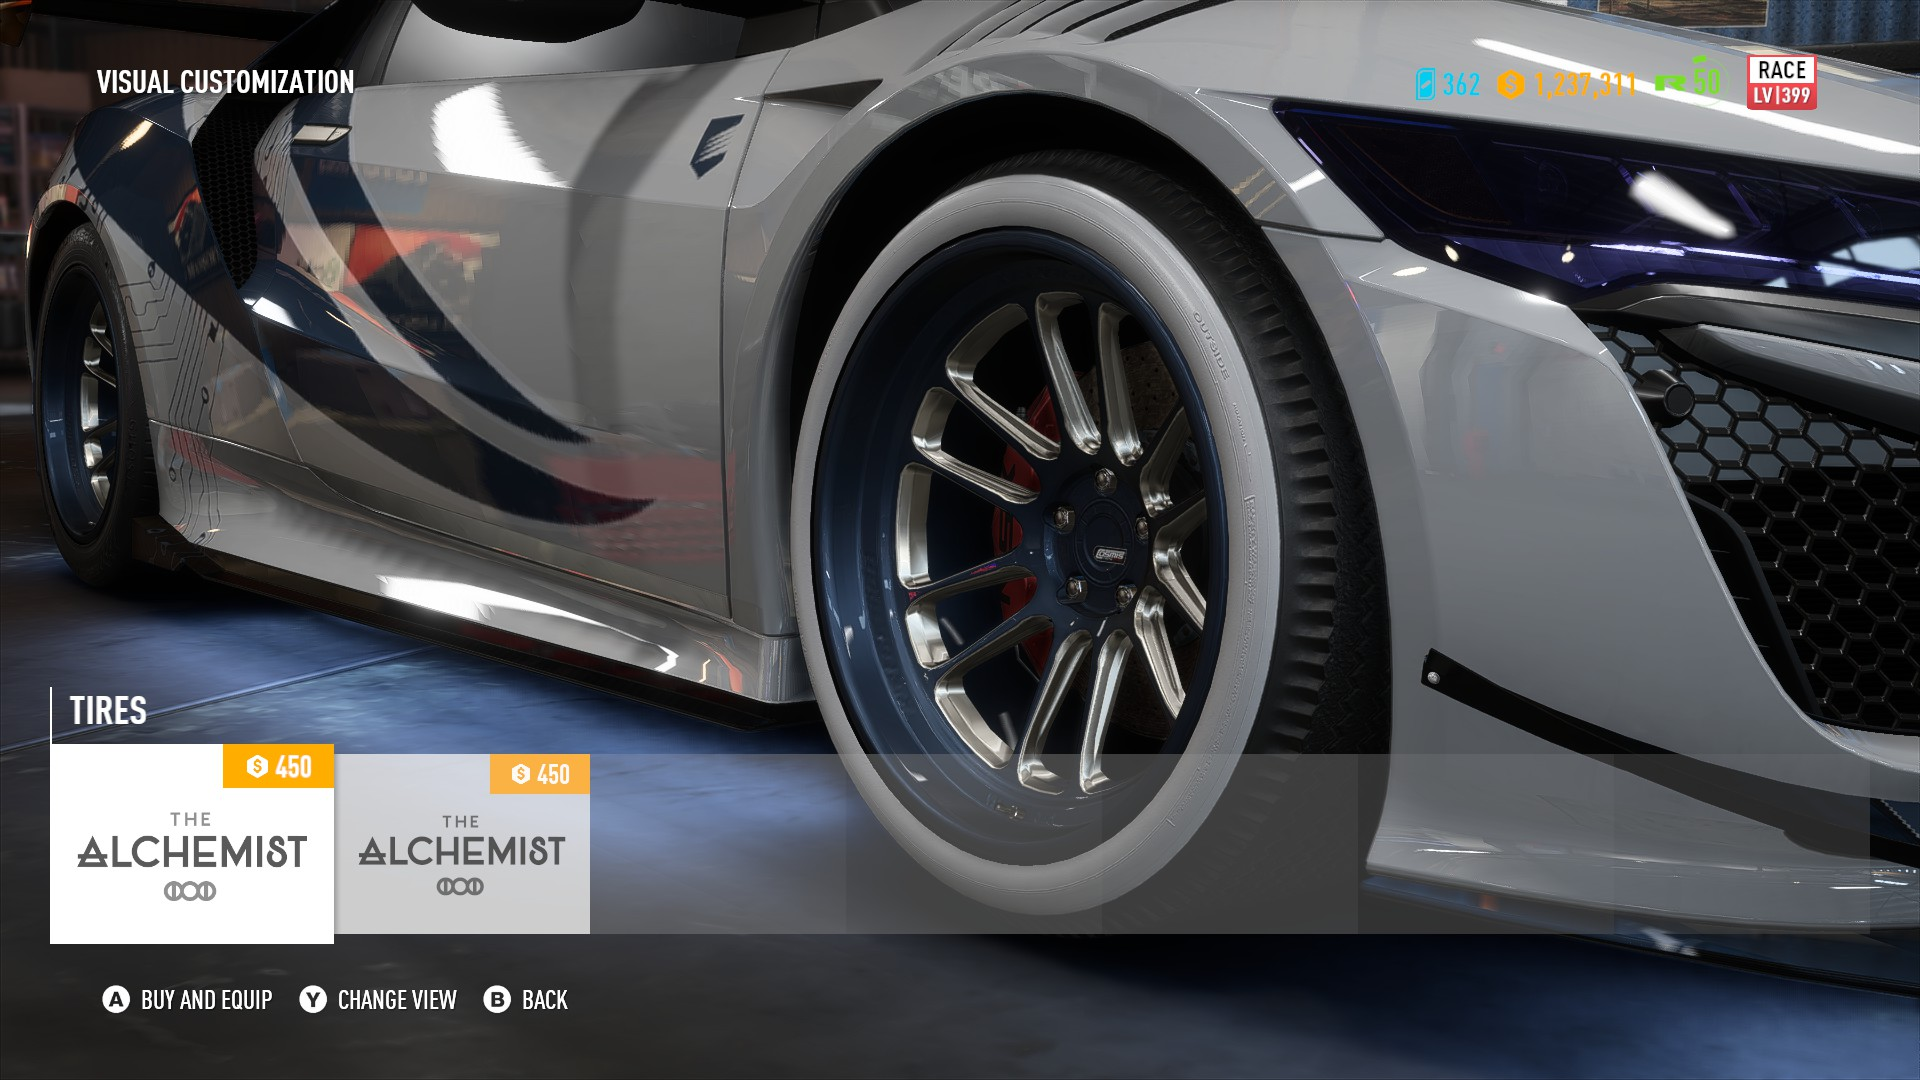 NFSMods - Ultimate Customization Fitgirl